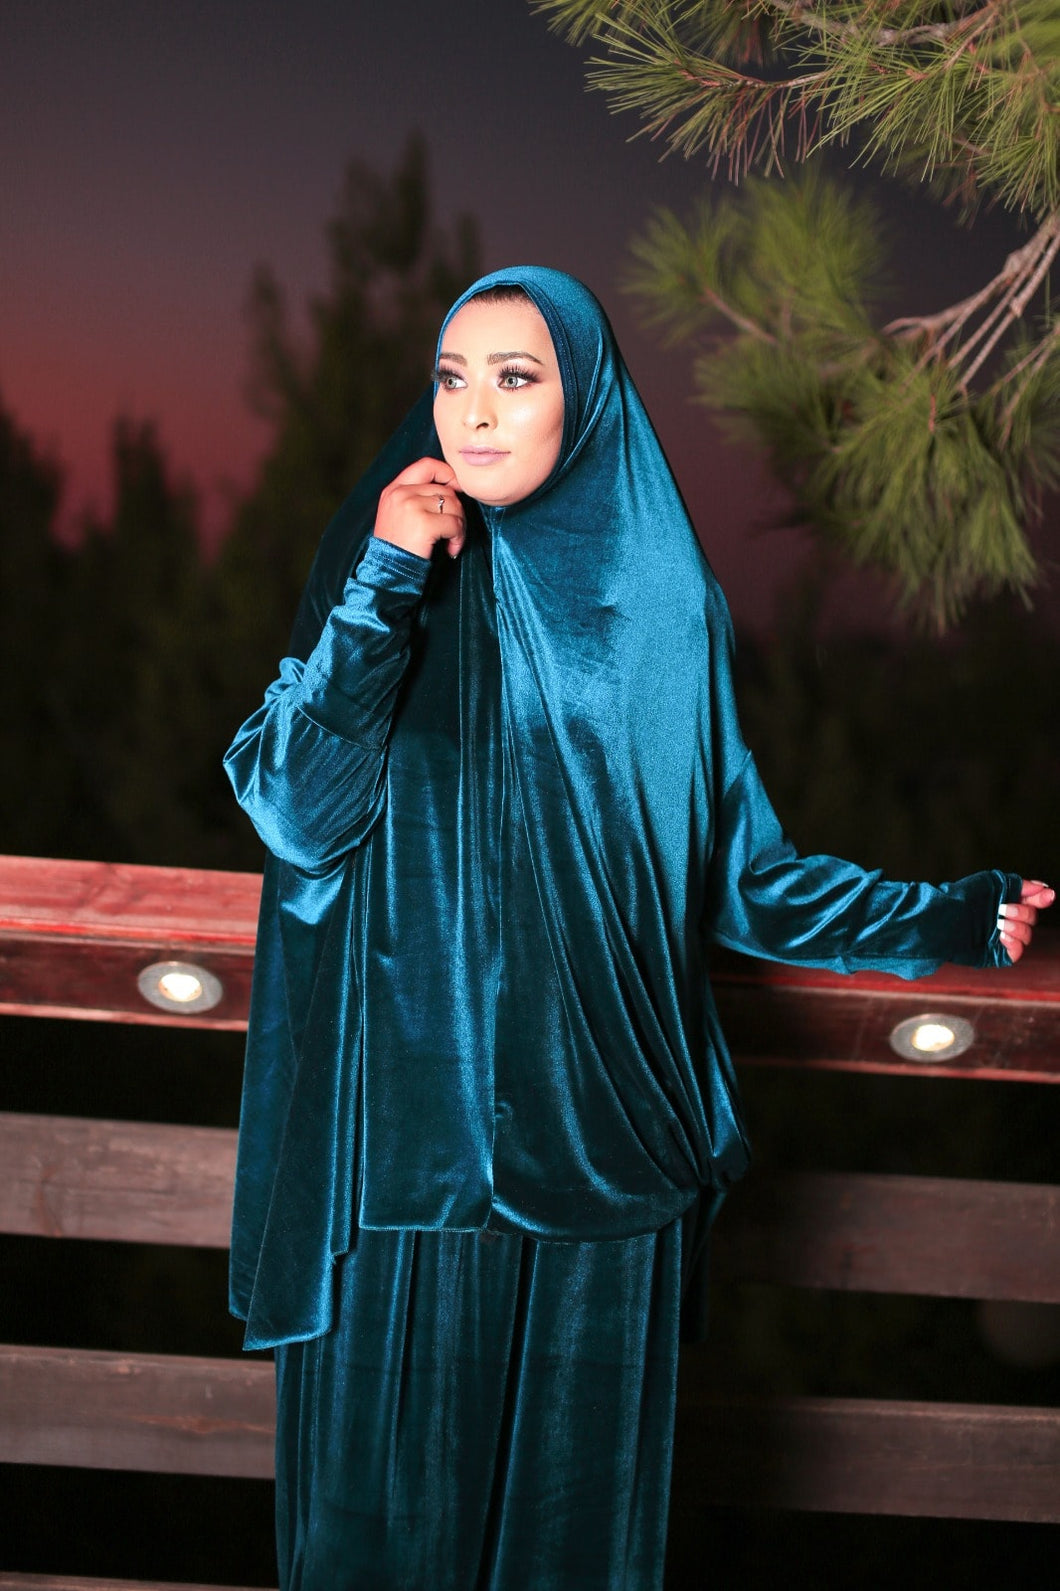 Free Size Turquoise Smooth Velvet Prayer Dress Hijab Scarf Islamic Abaya Prayer Clothes